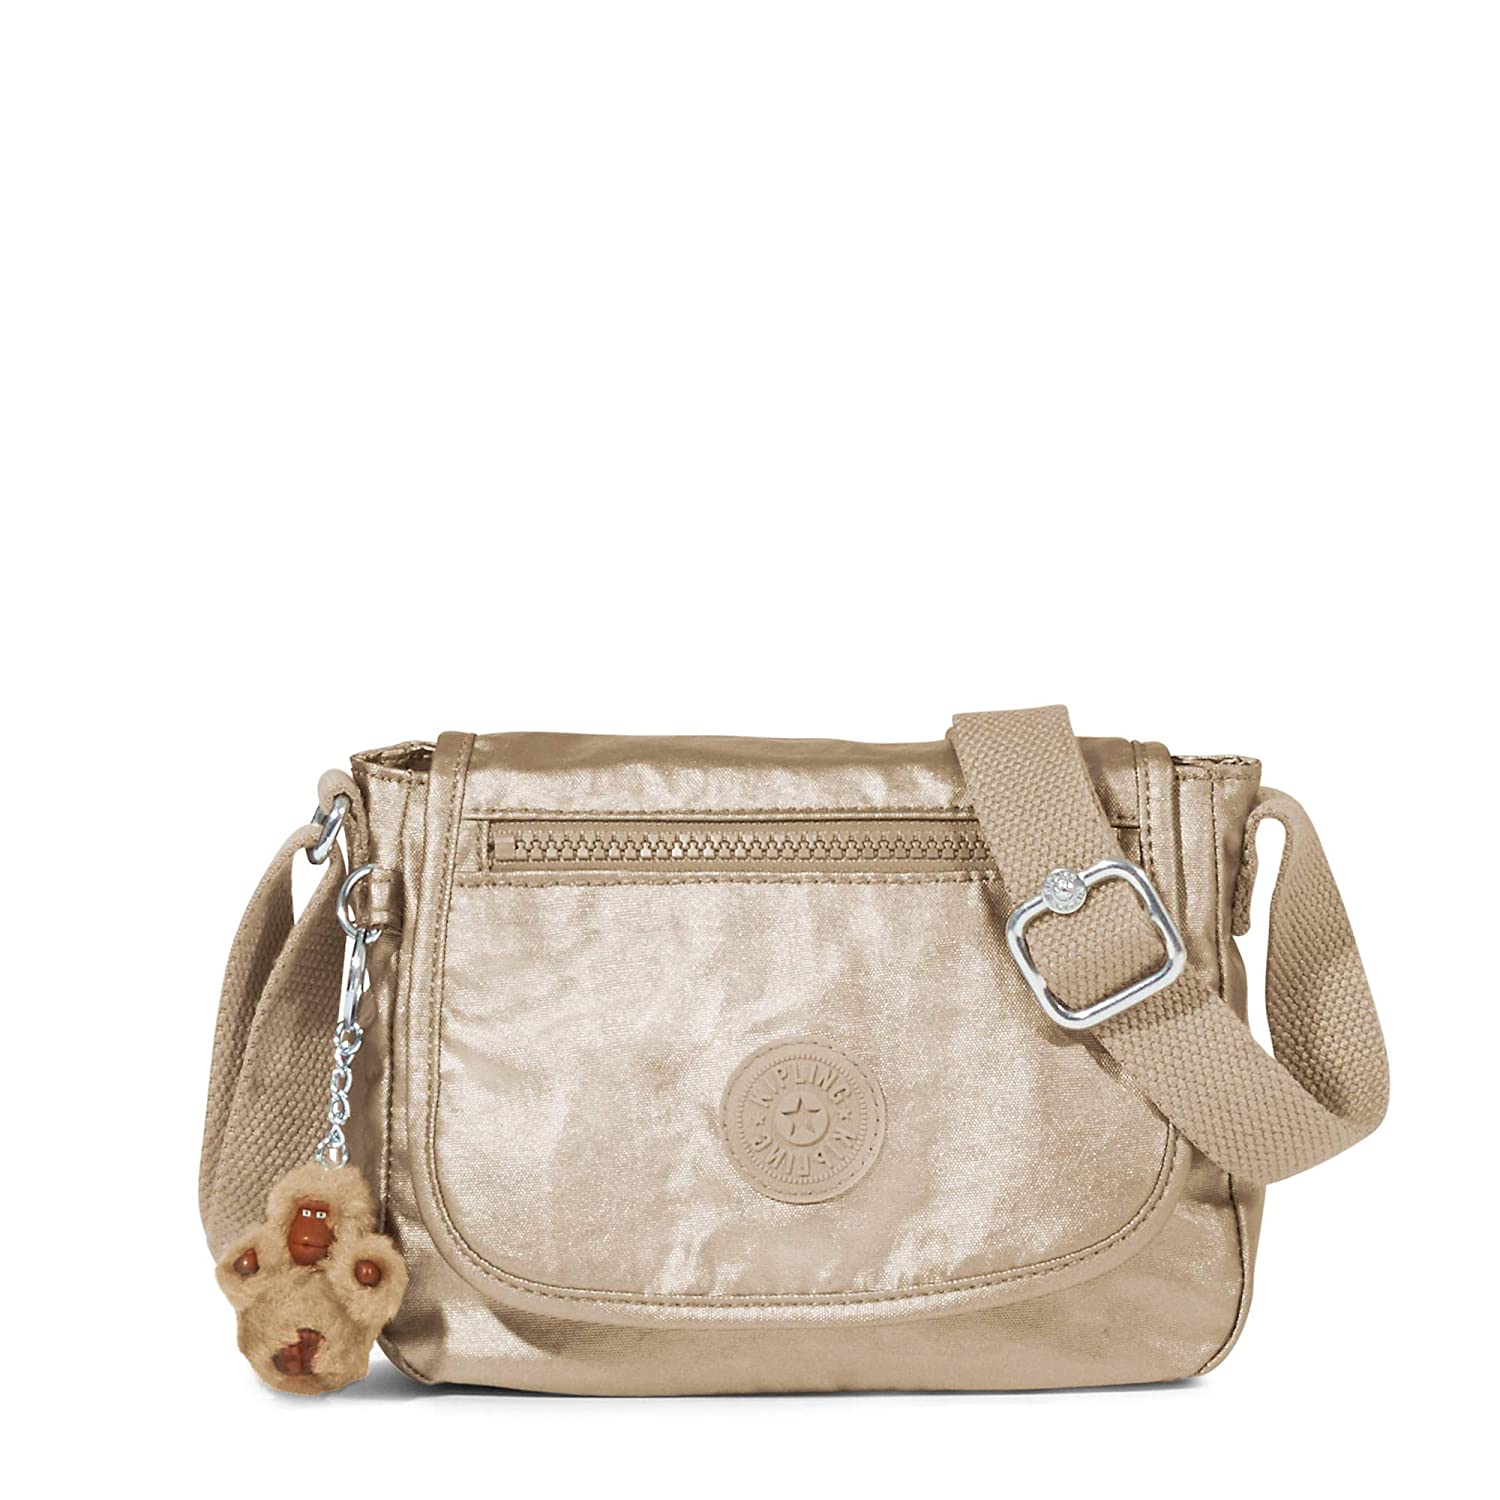 Kipling Sabian Metallic Crossbody Mini Bag Toasty Gold